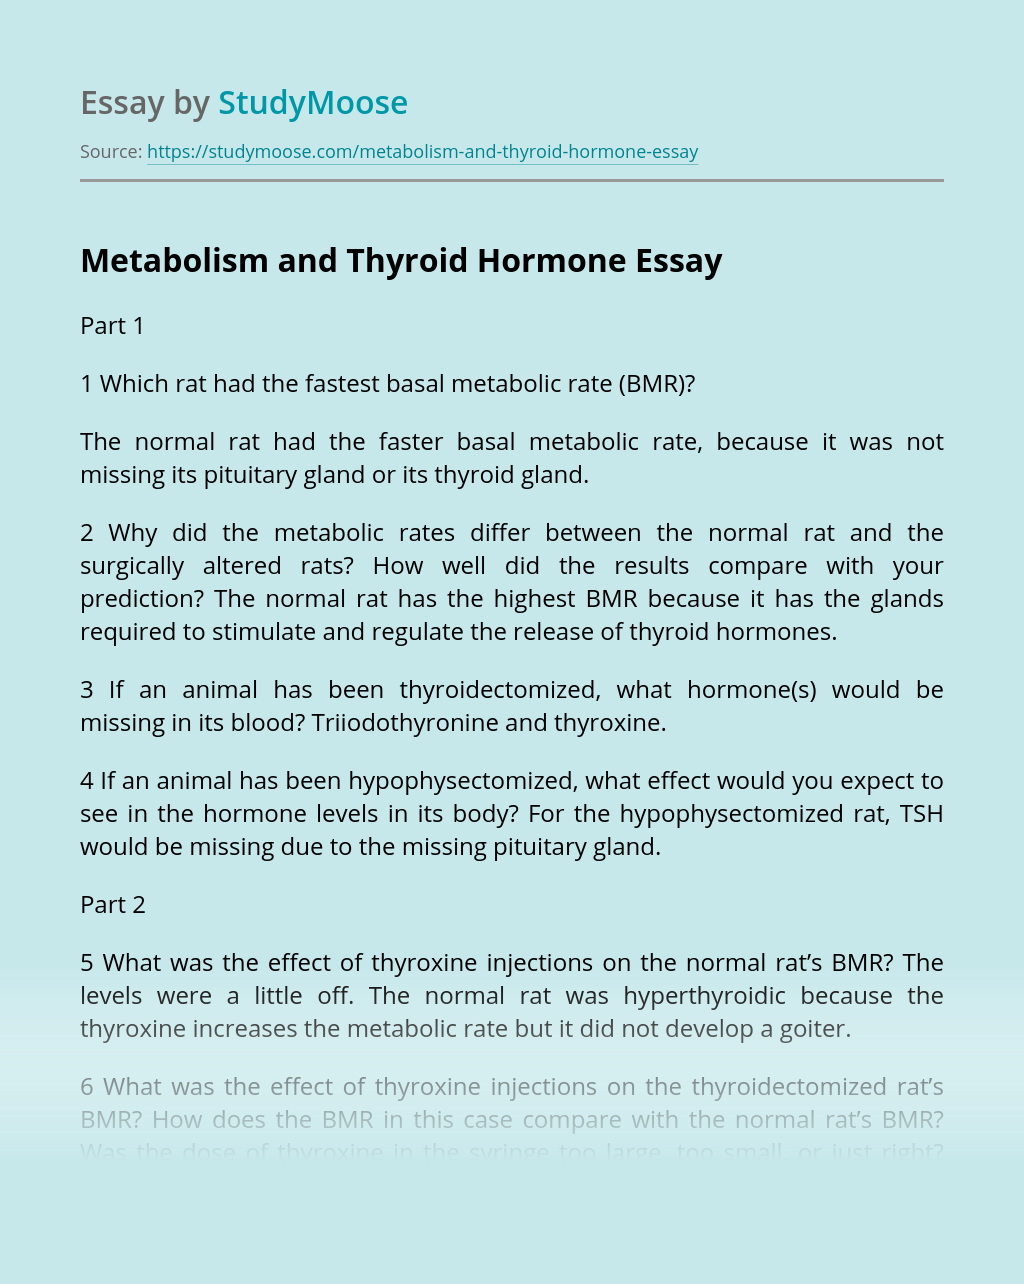 Metabolism and Thyroid Hormone